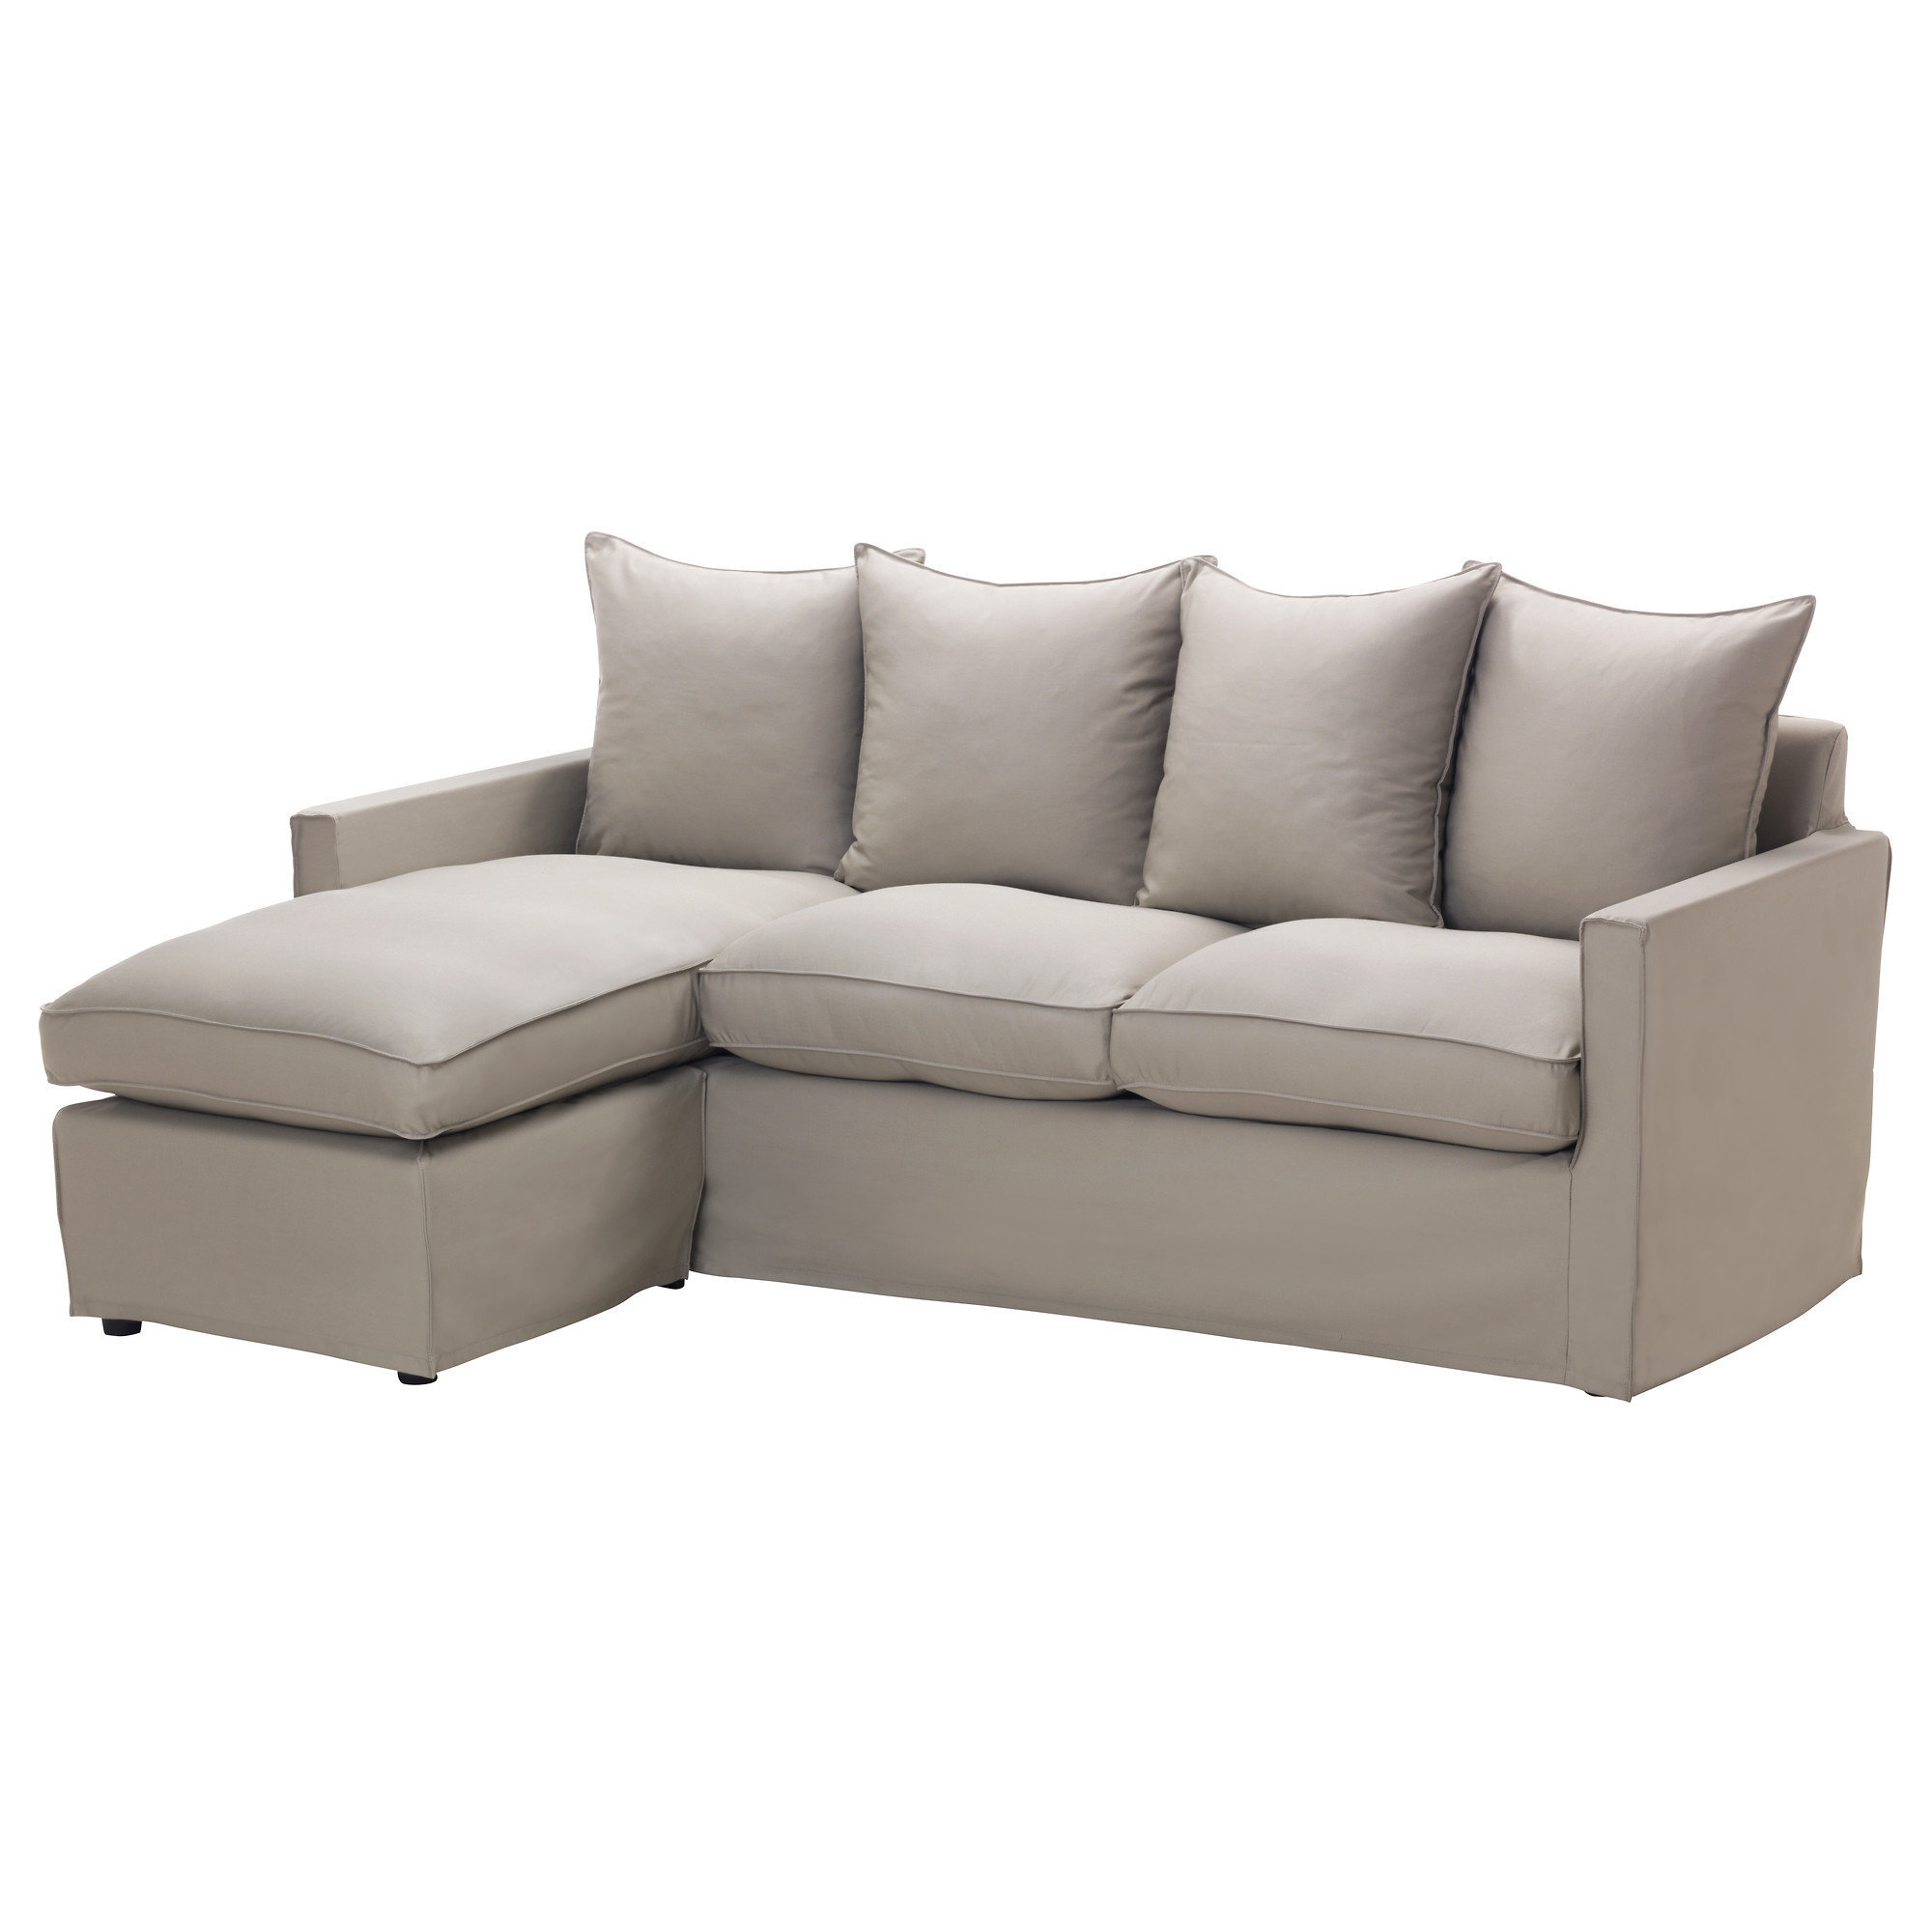 Ikea Sofa And Chaise Lounge